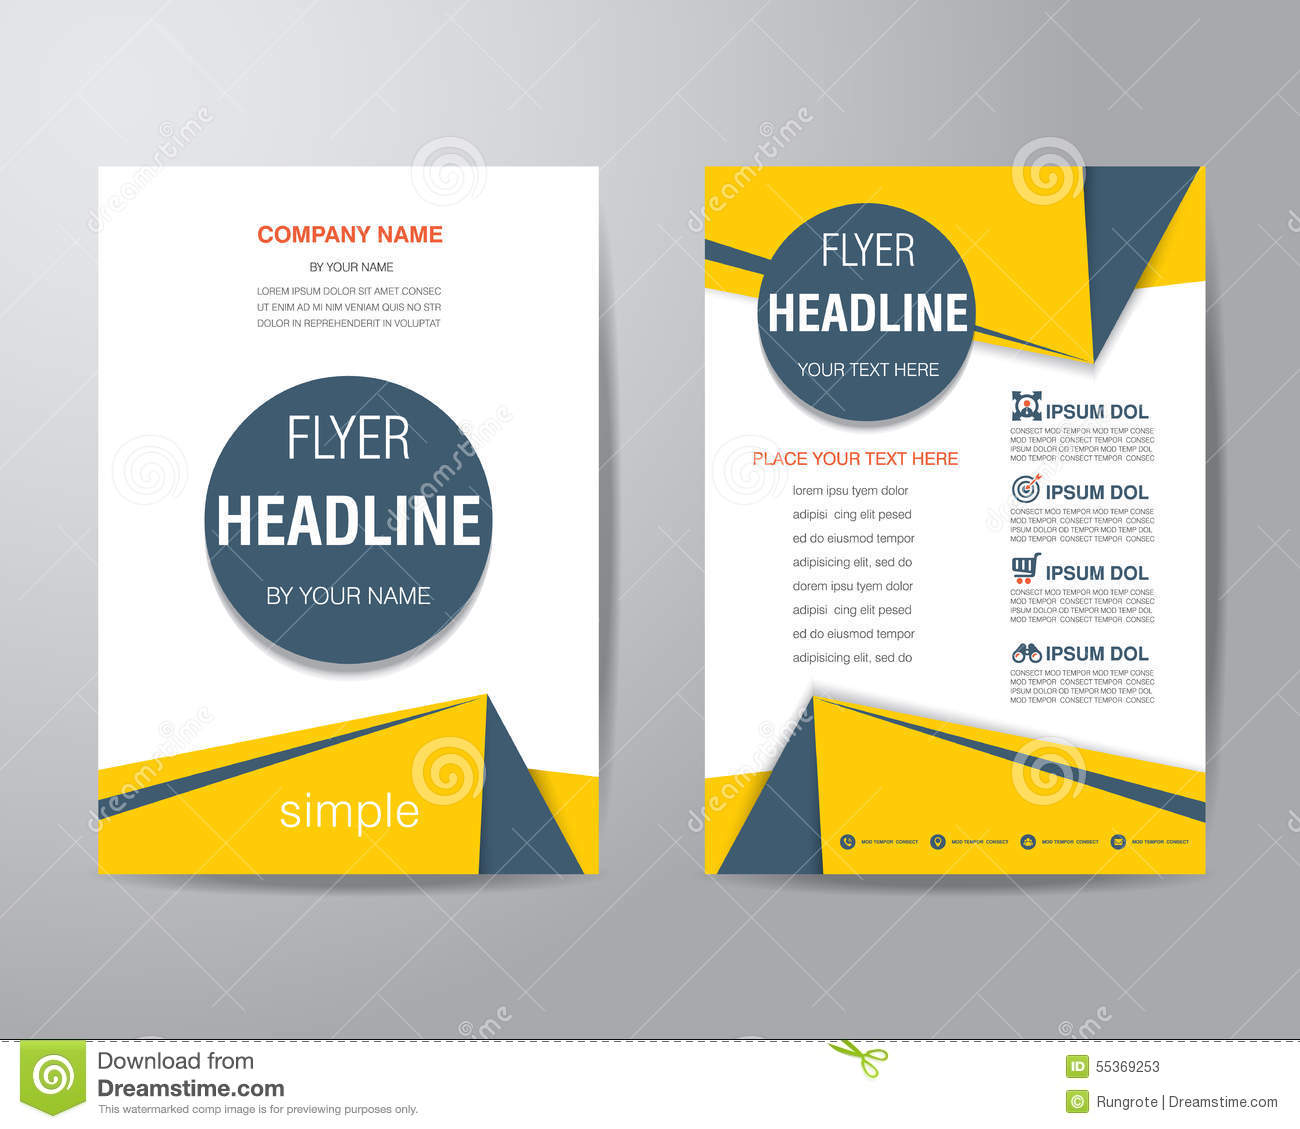 design brochure templates - simple triangle and circle brochure flyer design layout